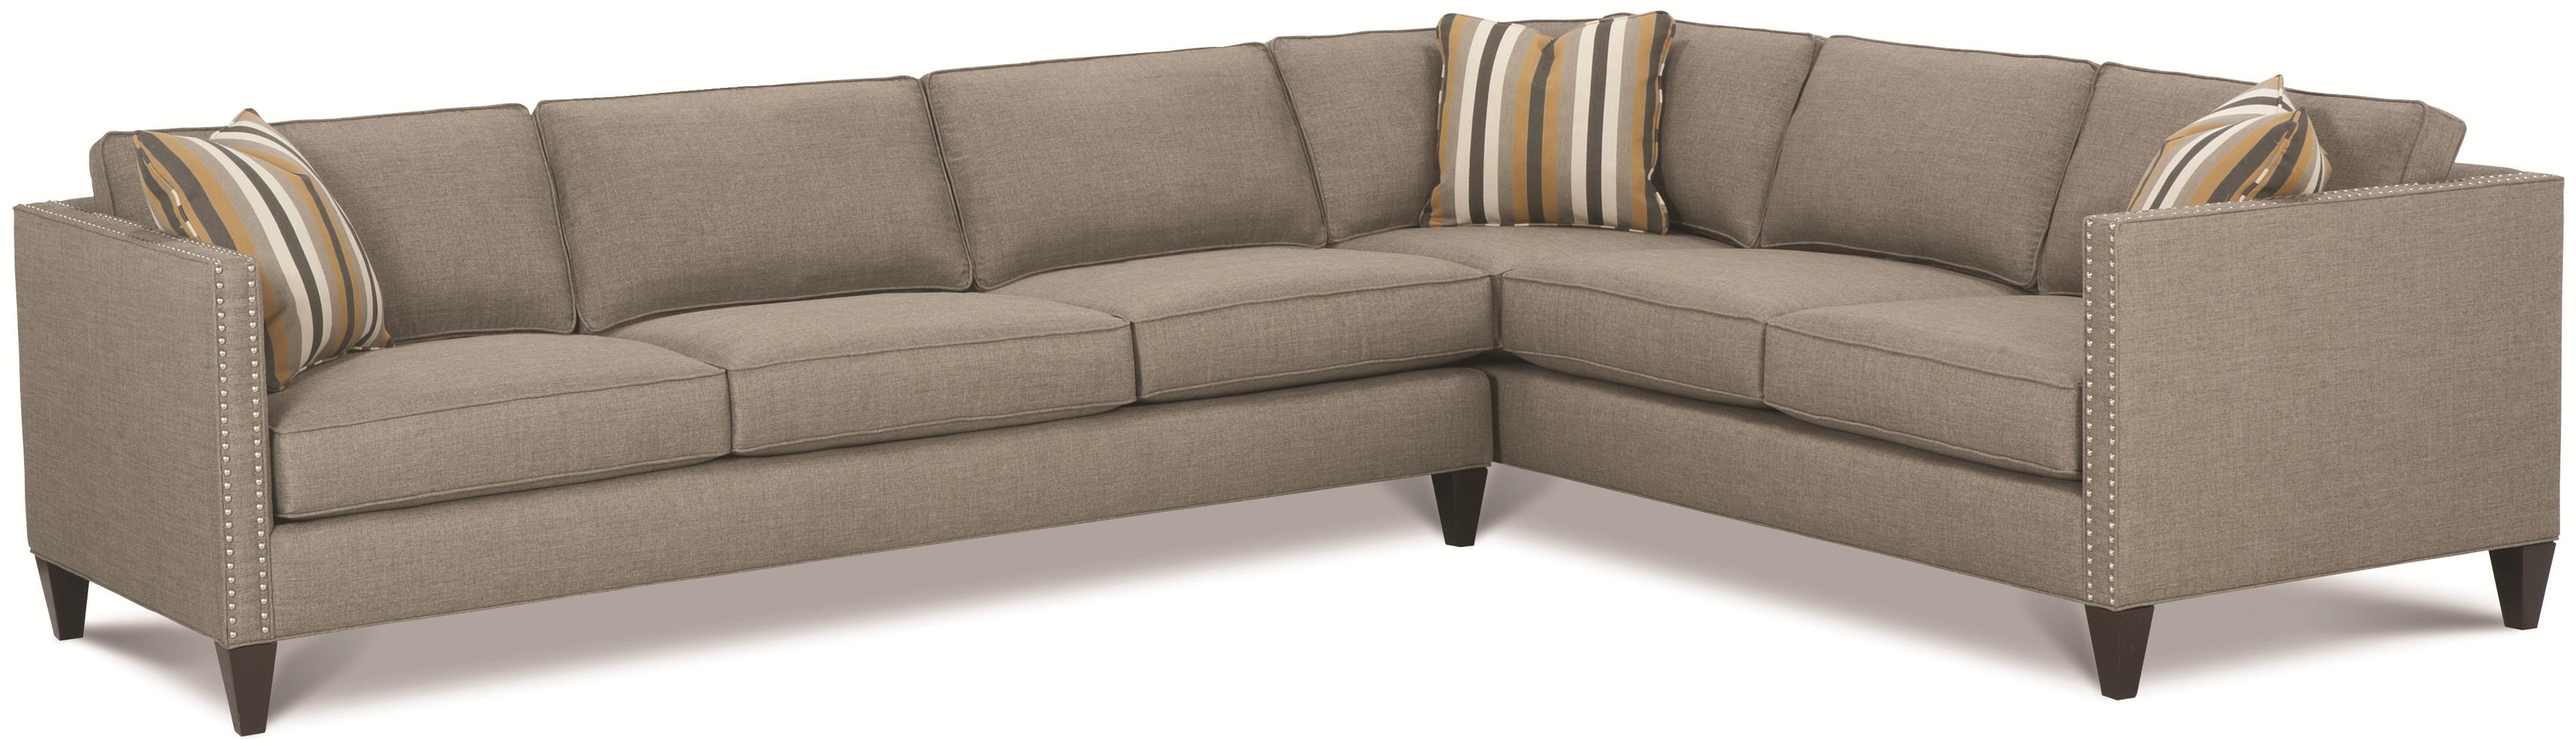 Rowe Sectional Sofas Martin Sectional By Rowe Furniture TheSofa